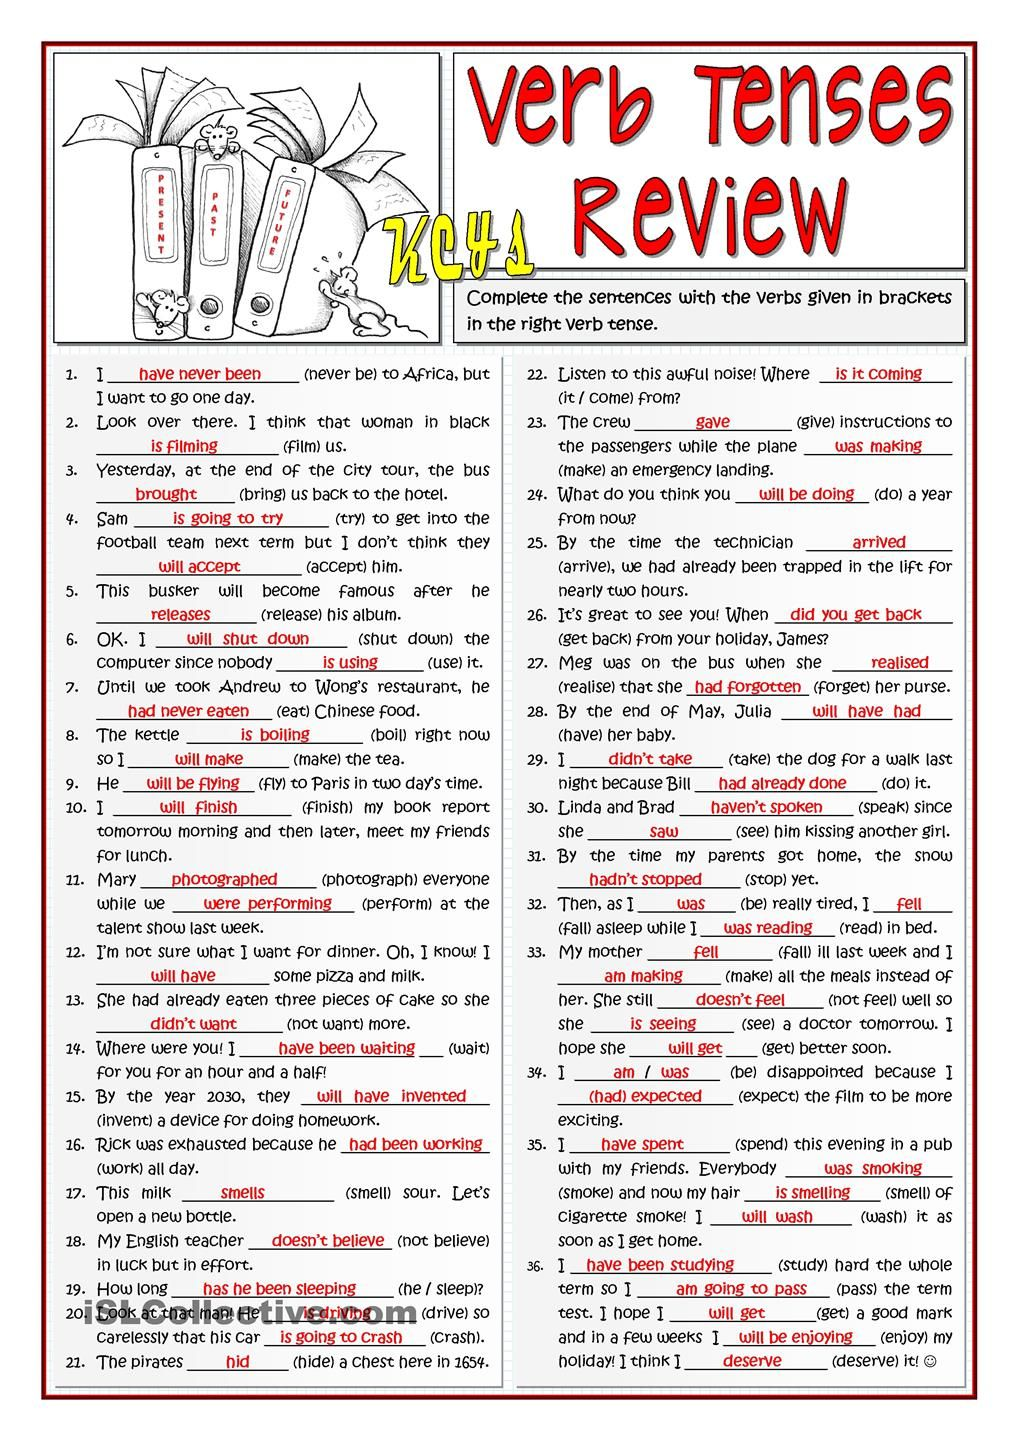 worksheet Grammar Review Worksheets b1 verb tenses review poon pinterest english review